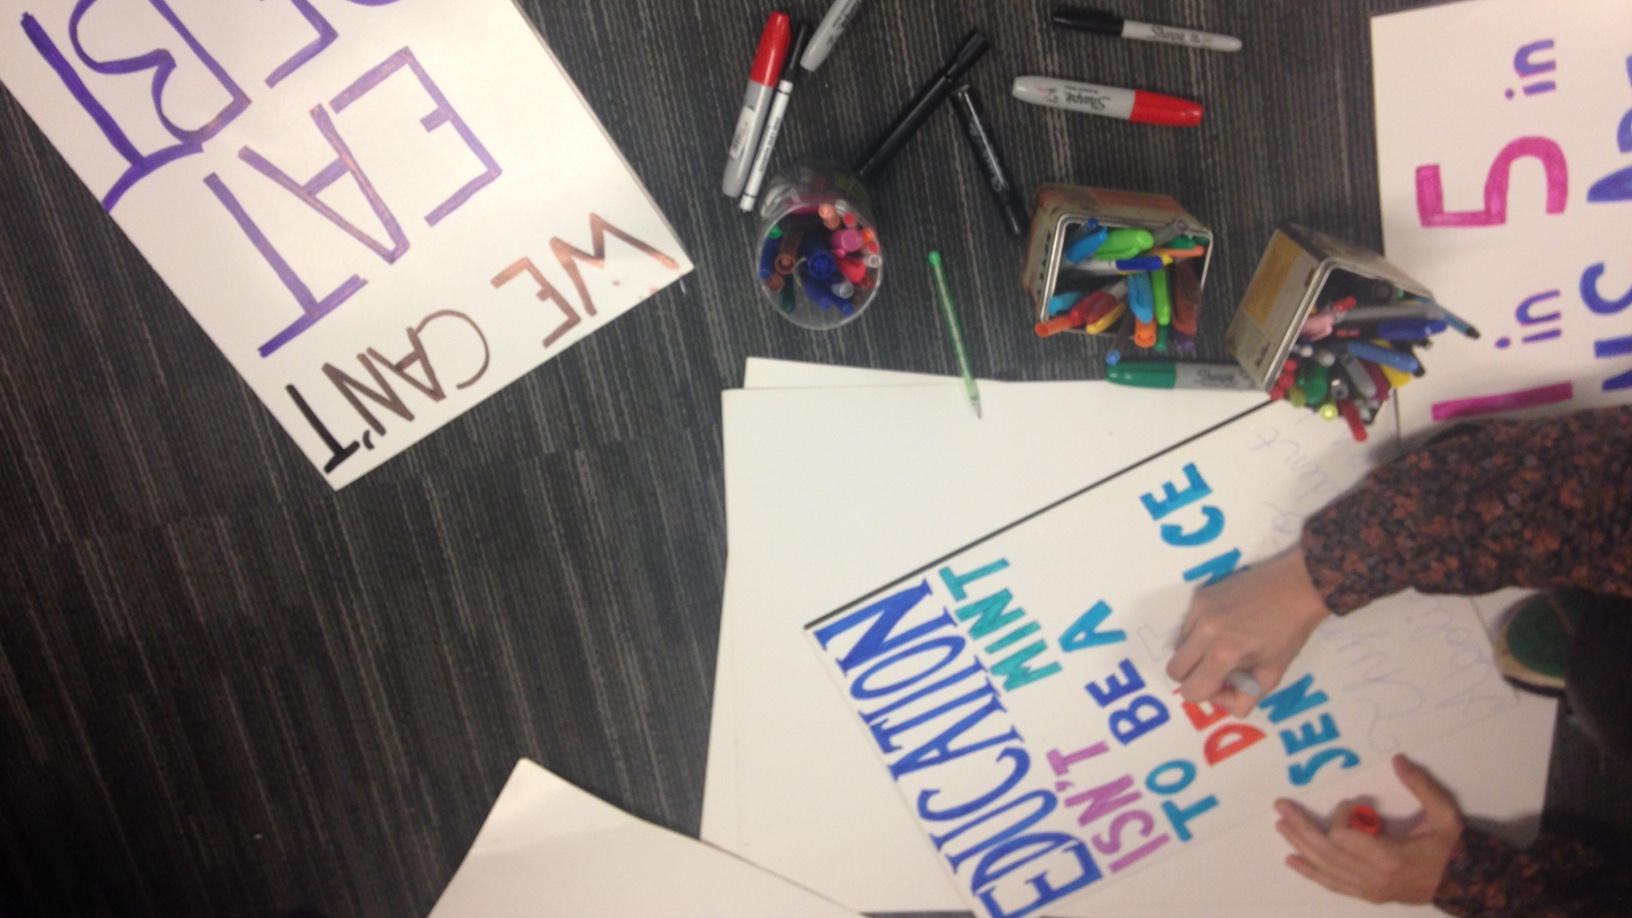 Students will protest high tuition fees, indigenous issues and more at the Nov 2 Day of Action,